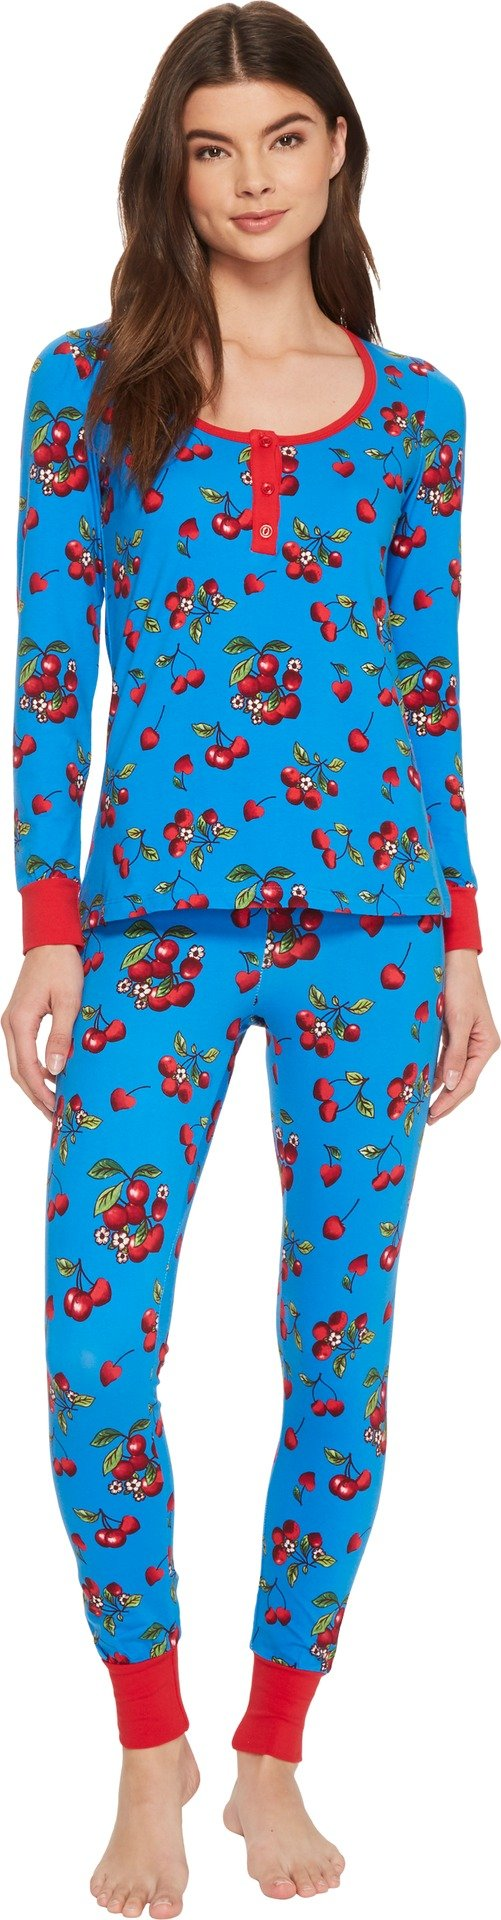 BedHead Women's Long Sleeve Henley Two-Piece Pajama Set Teal Cherries In Bloom Small